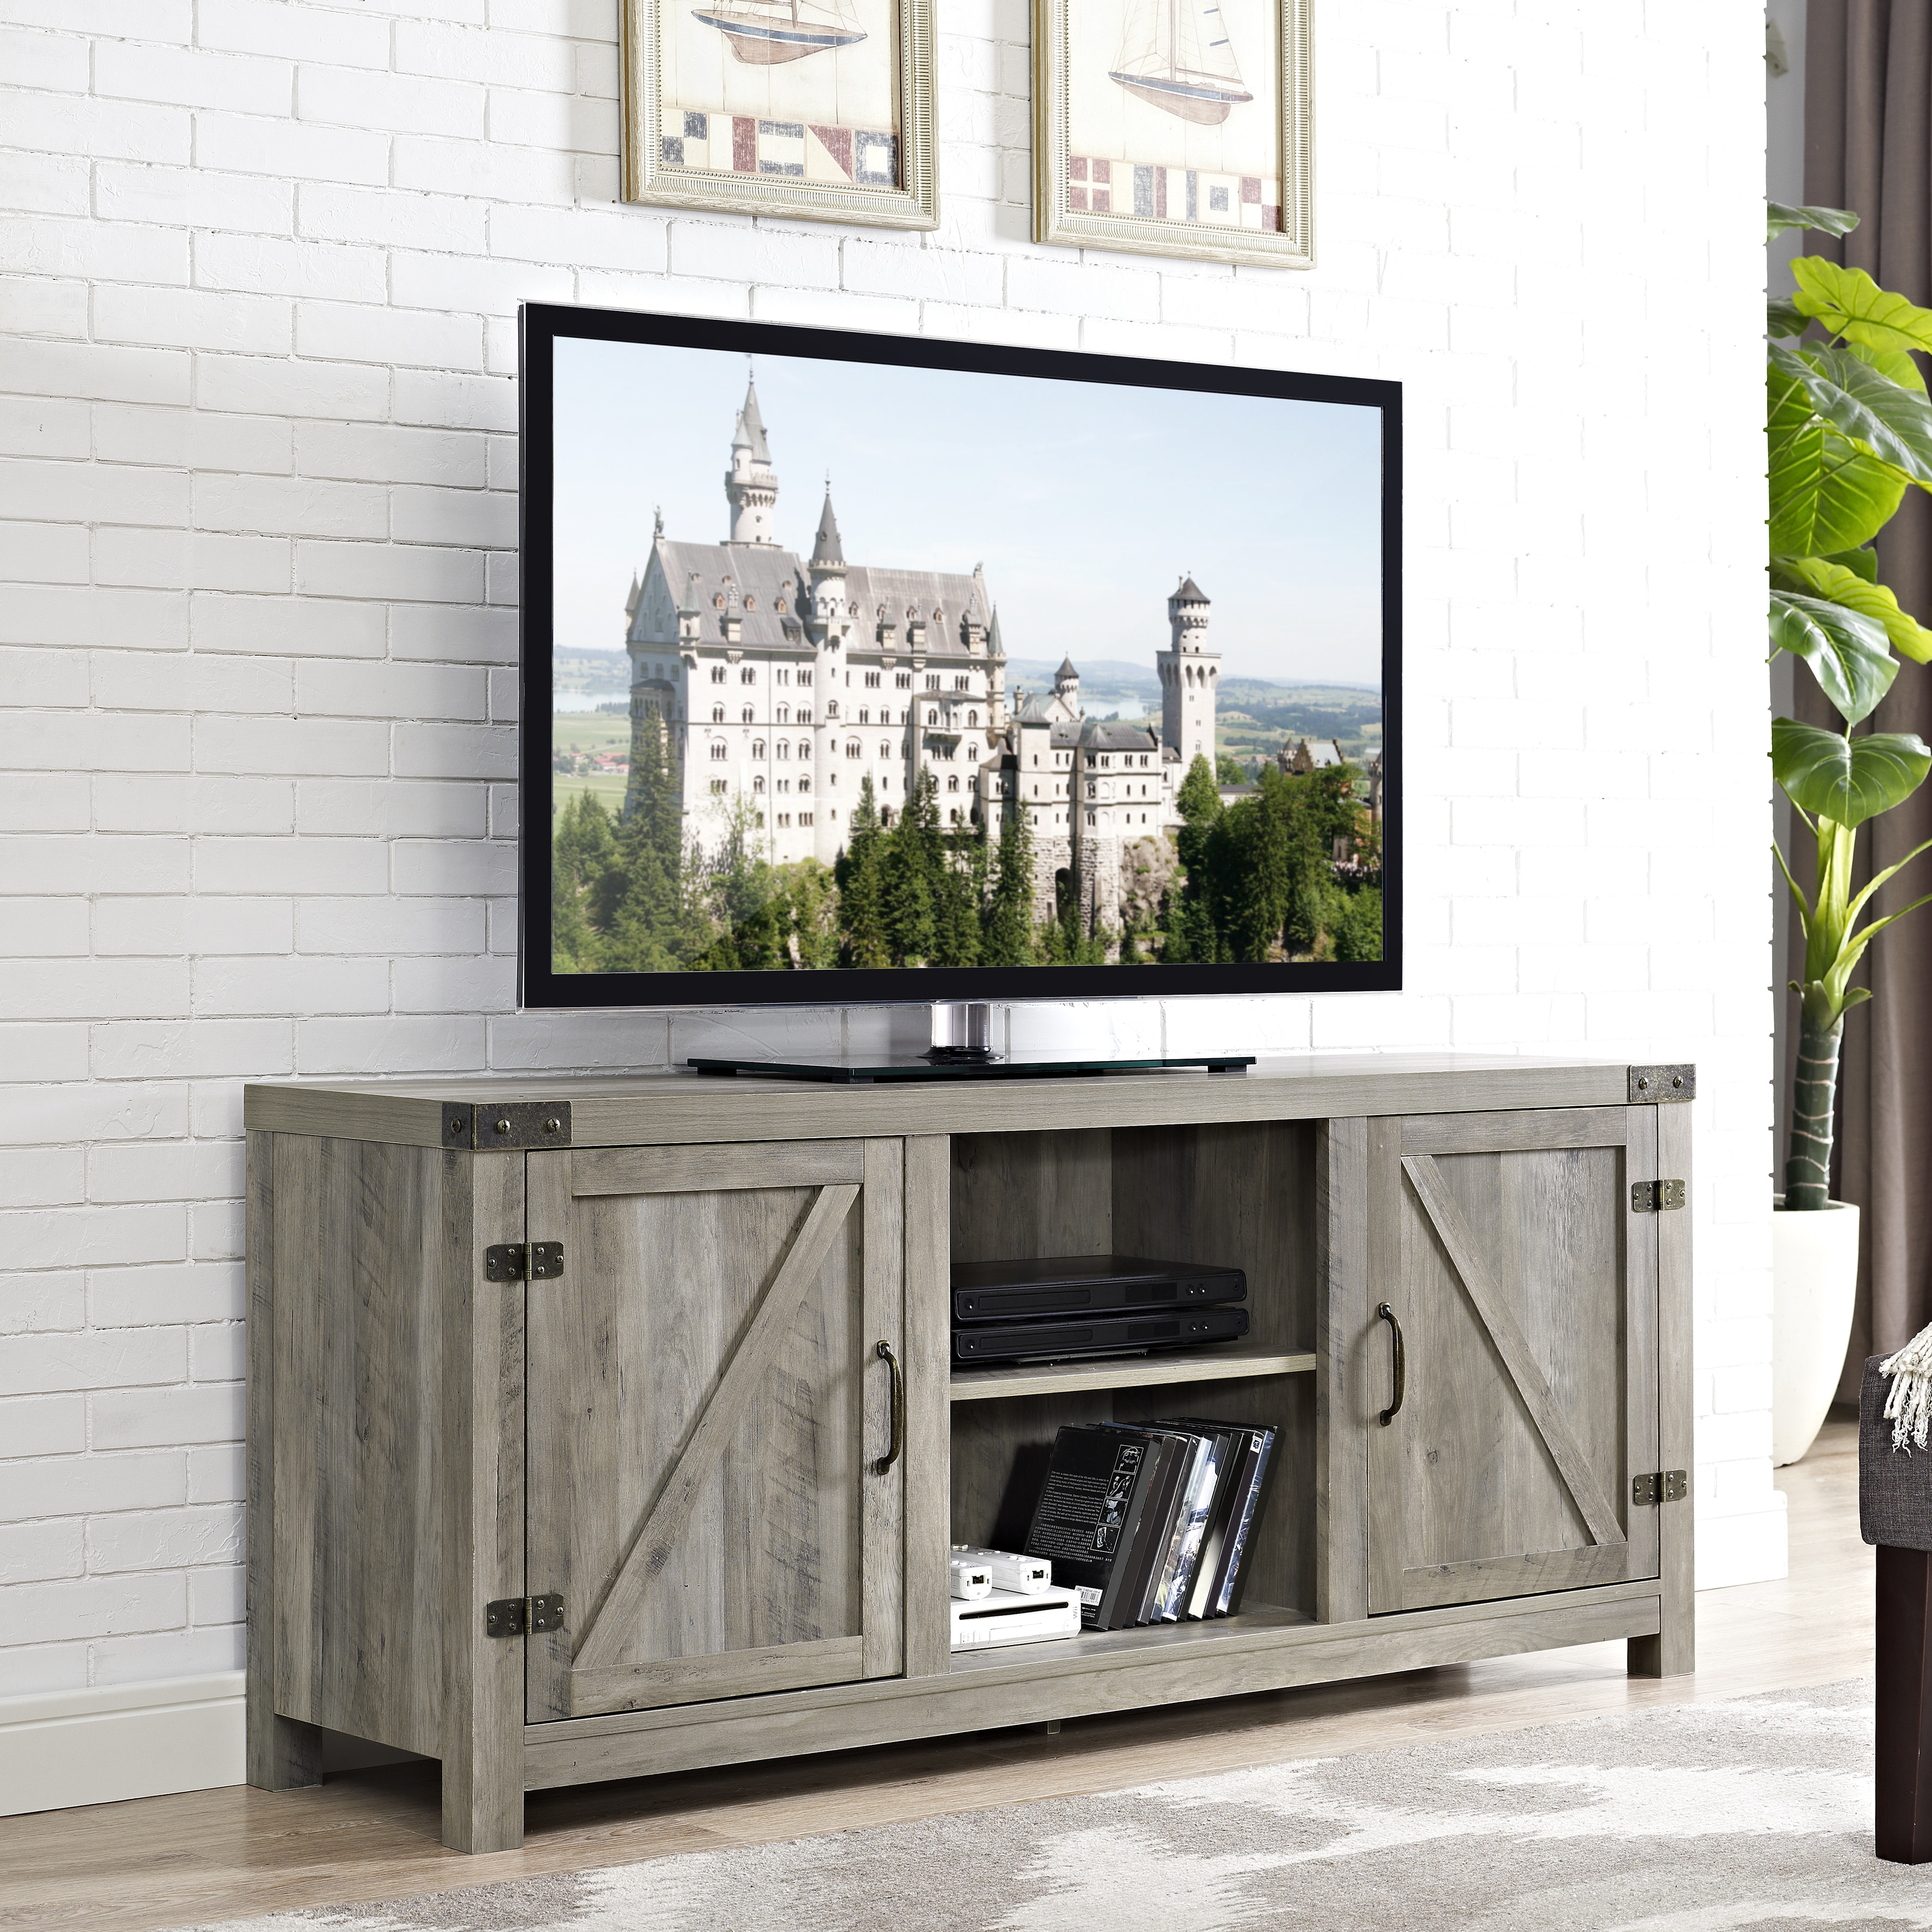 58-inch-Barn-Door-TV-Stand-with-Side- & 58-inch Barn Door TV Stand with Side Doors | eBay pezcame.com